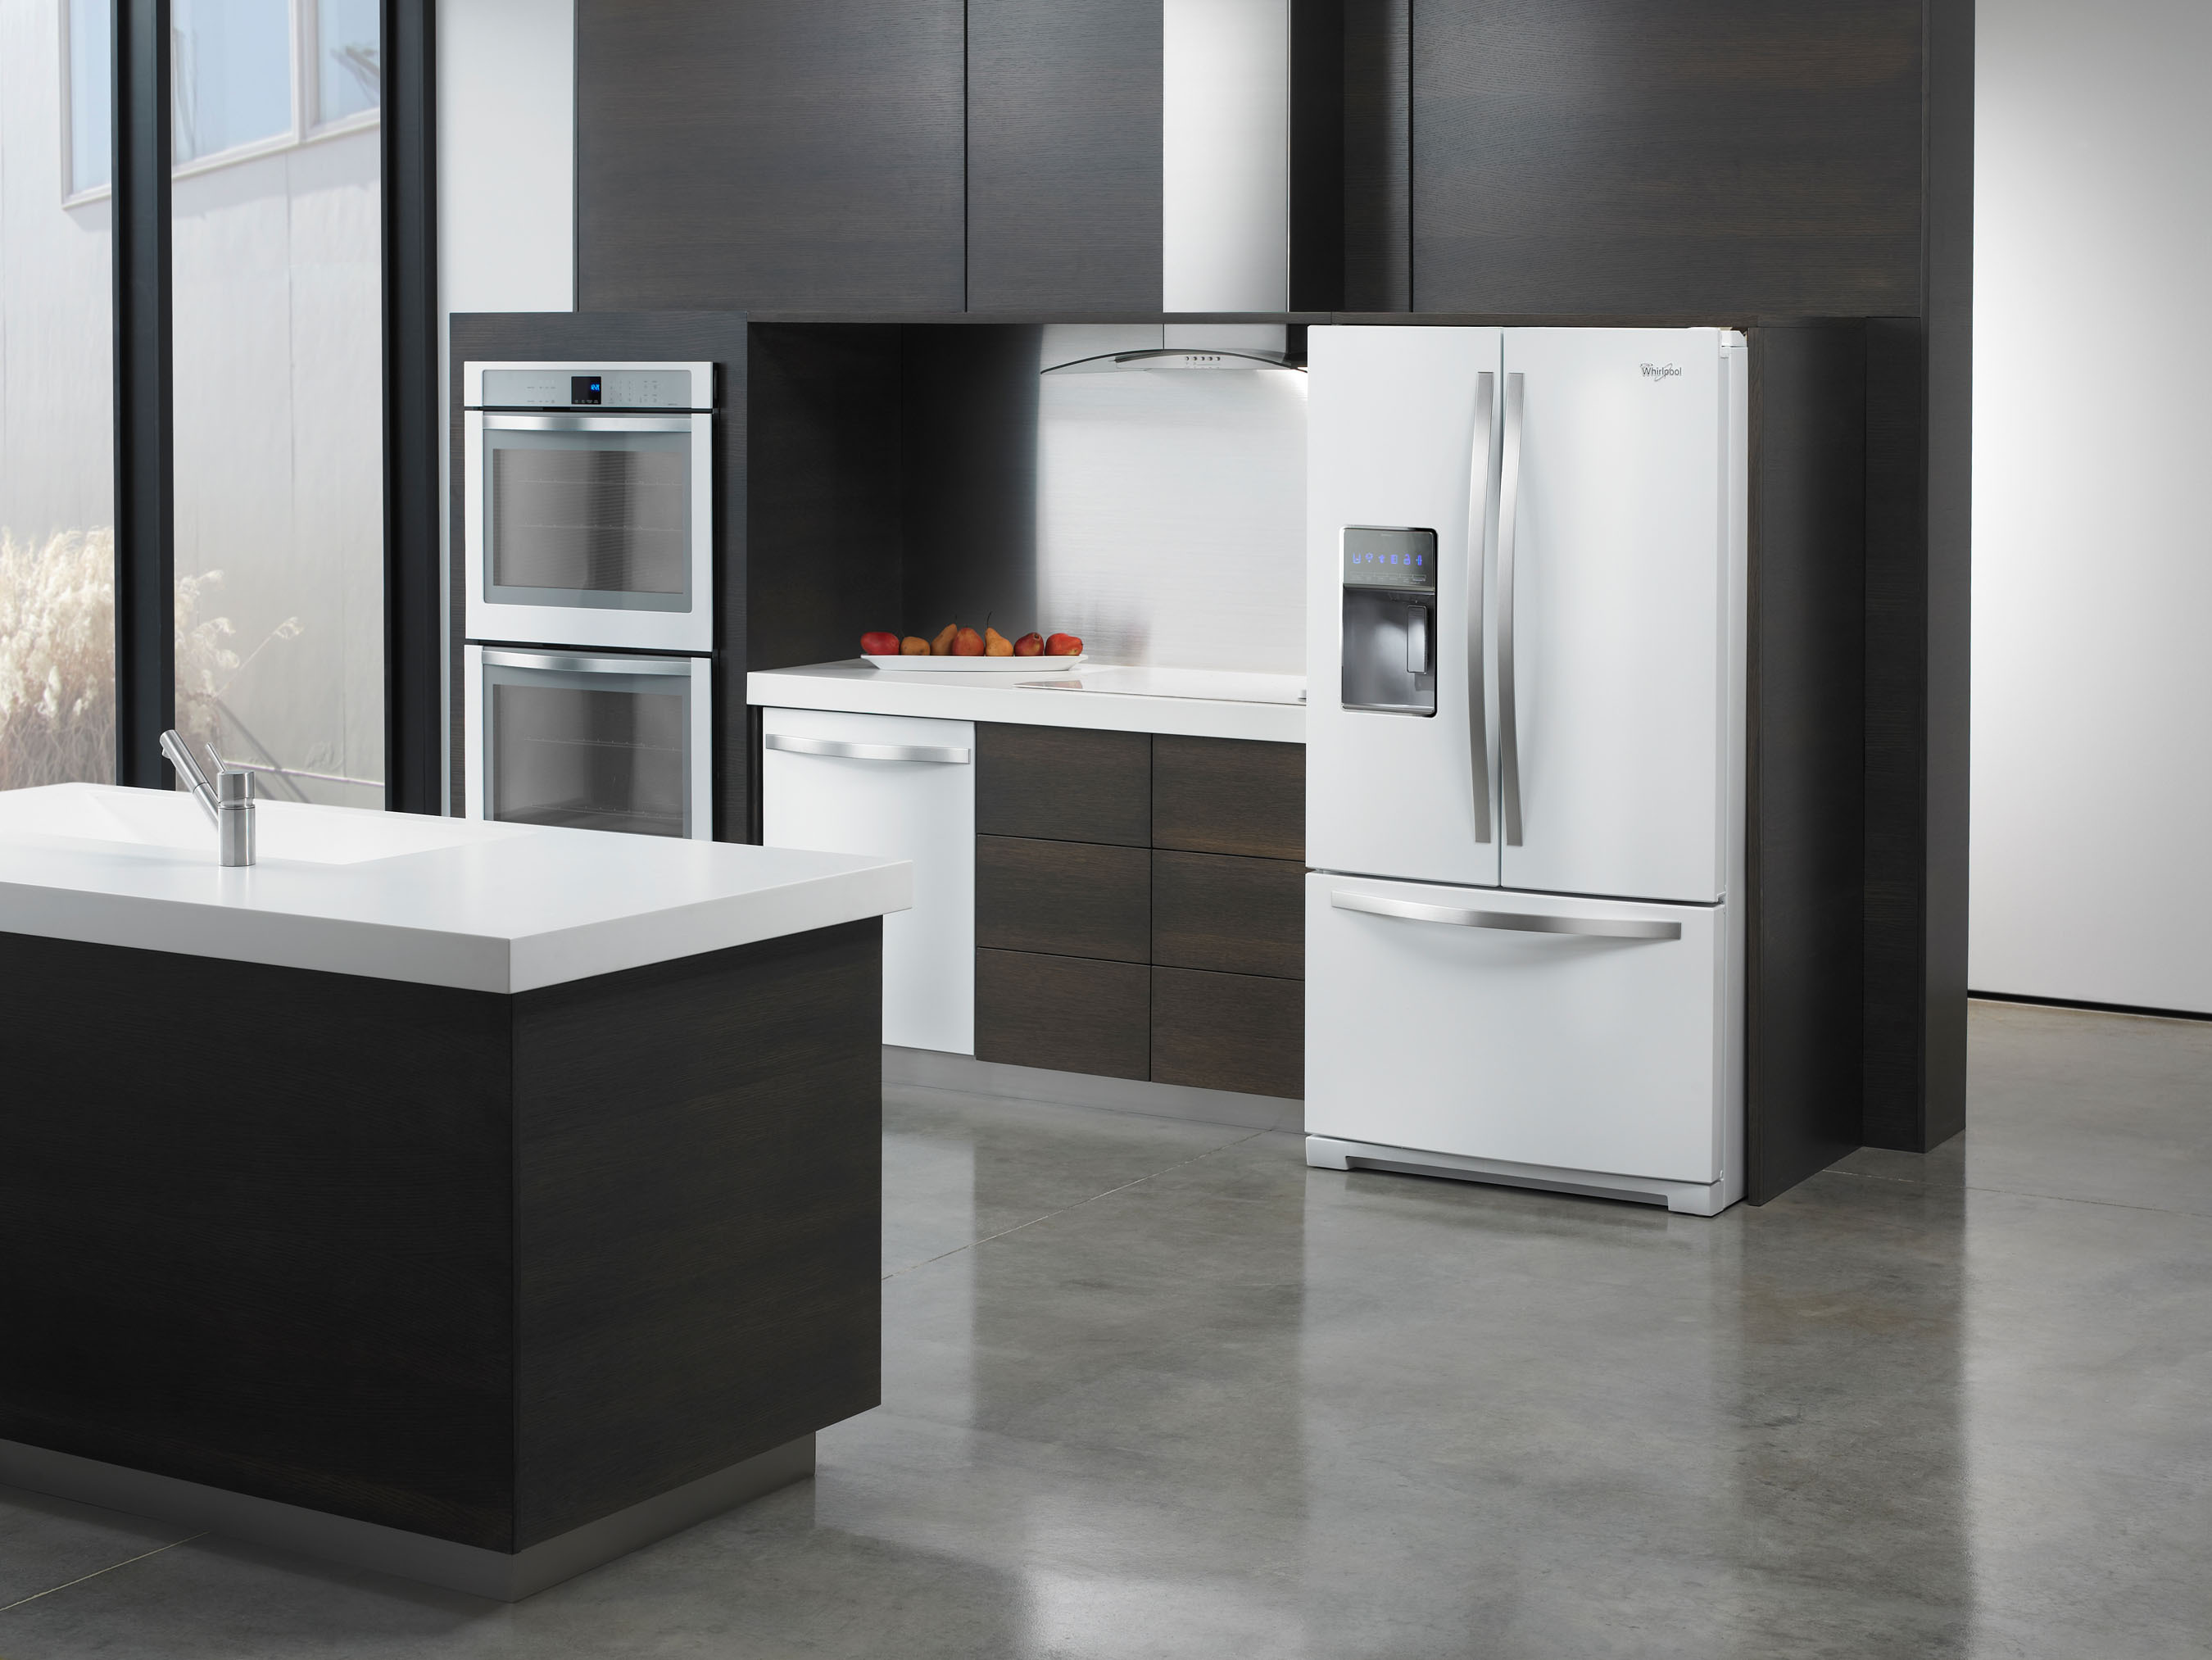 White Vs Black Vs Stainless Steel Appliances